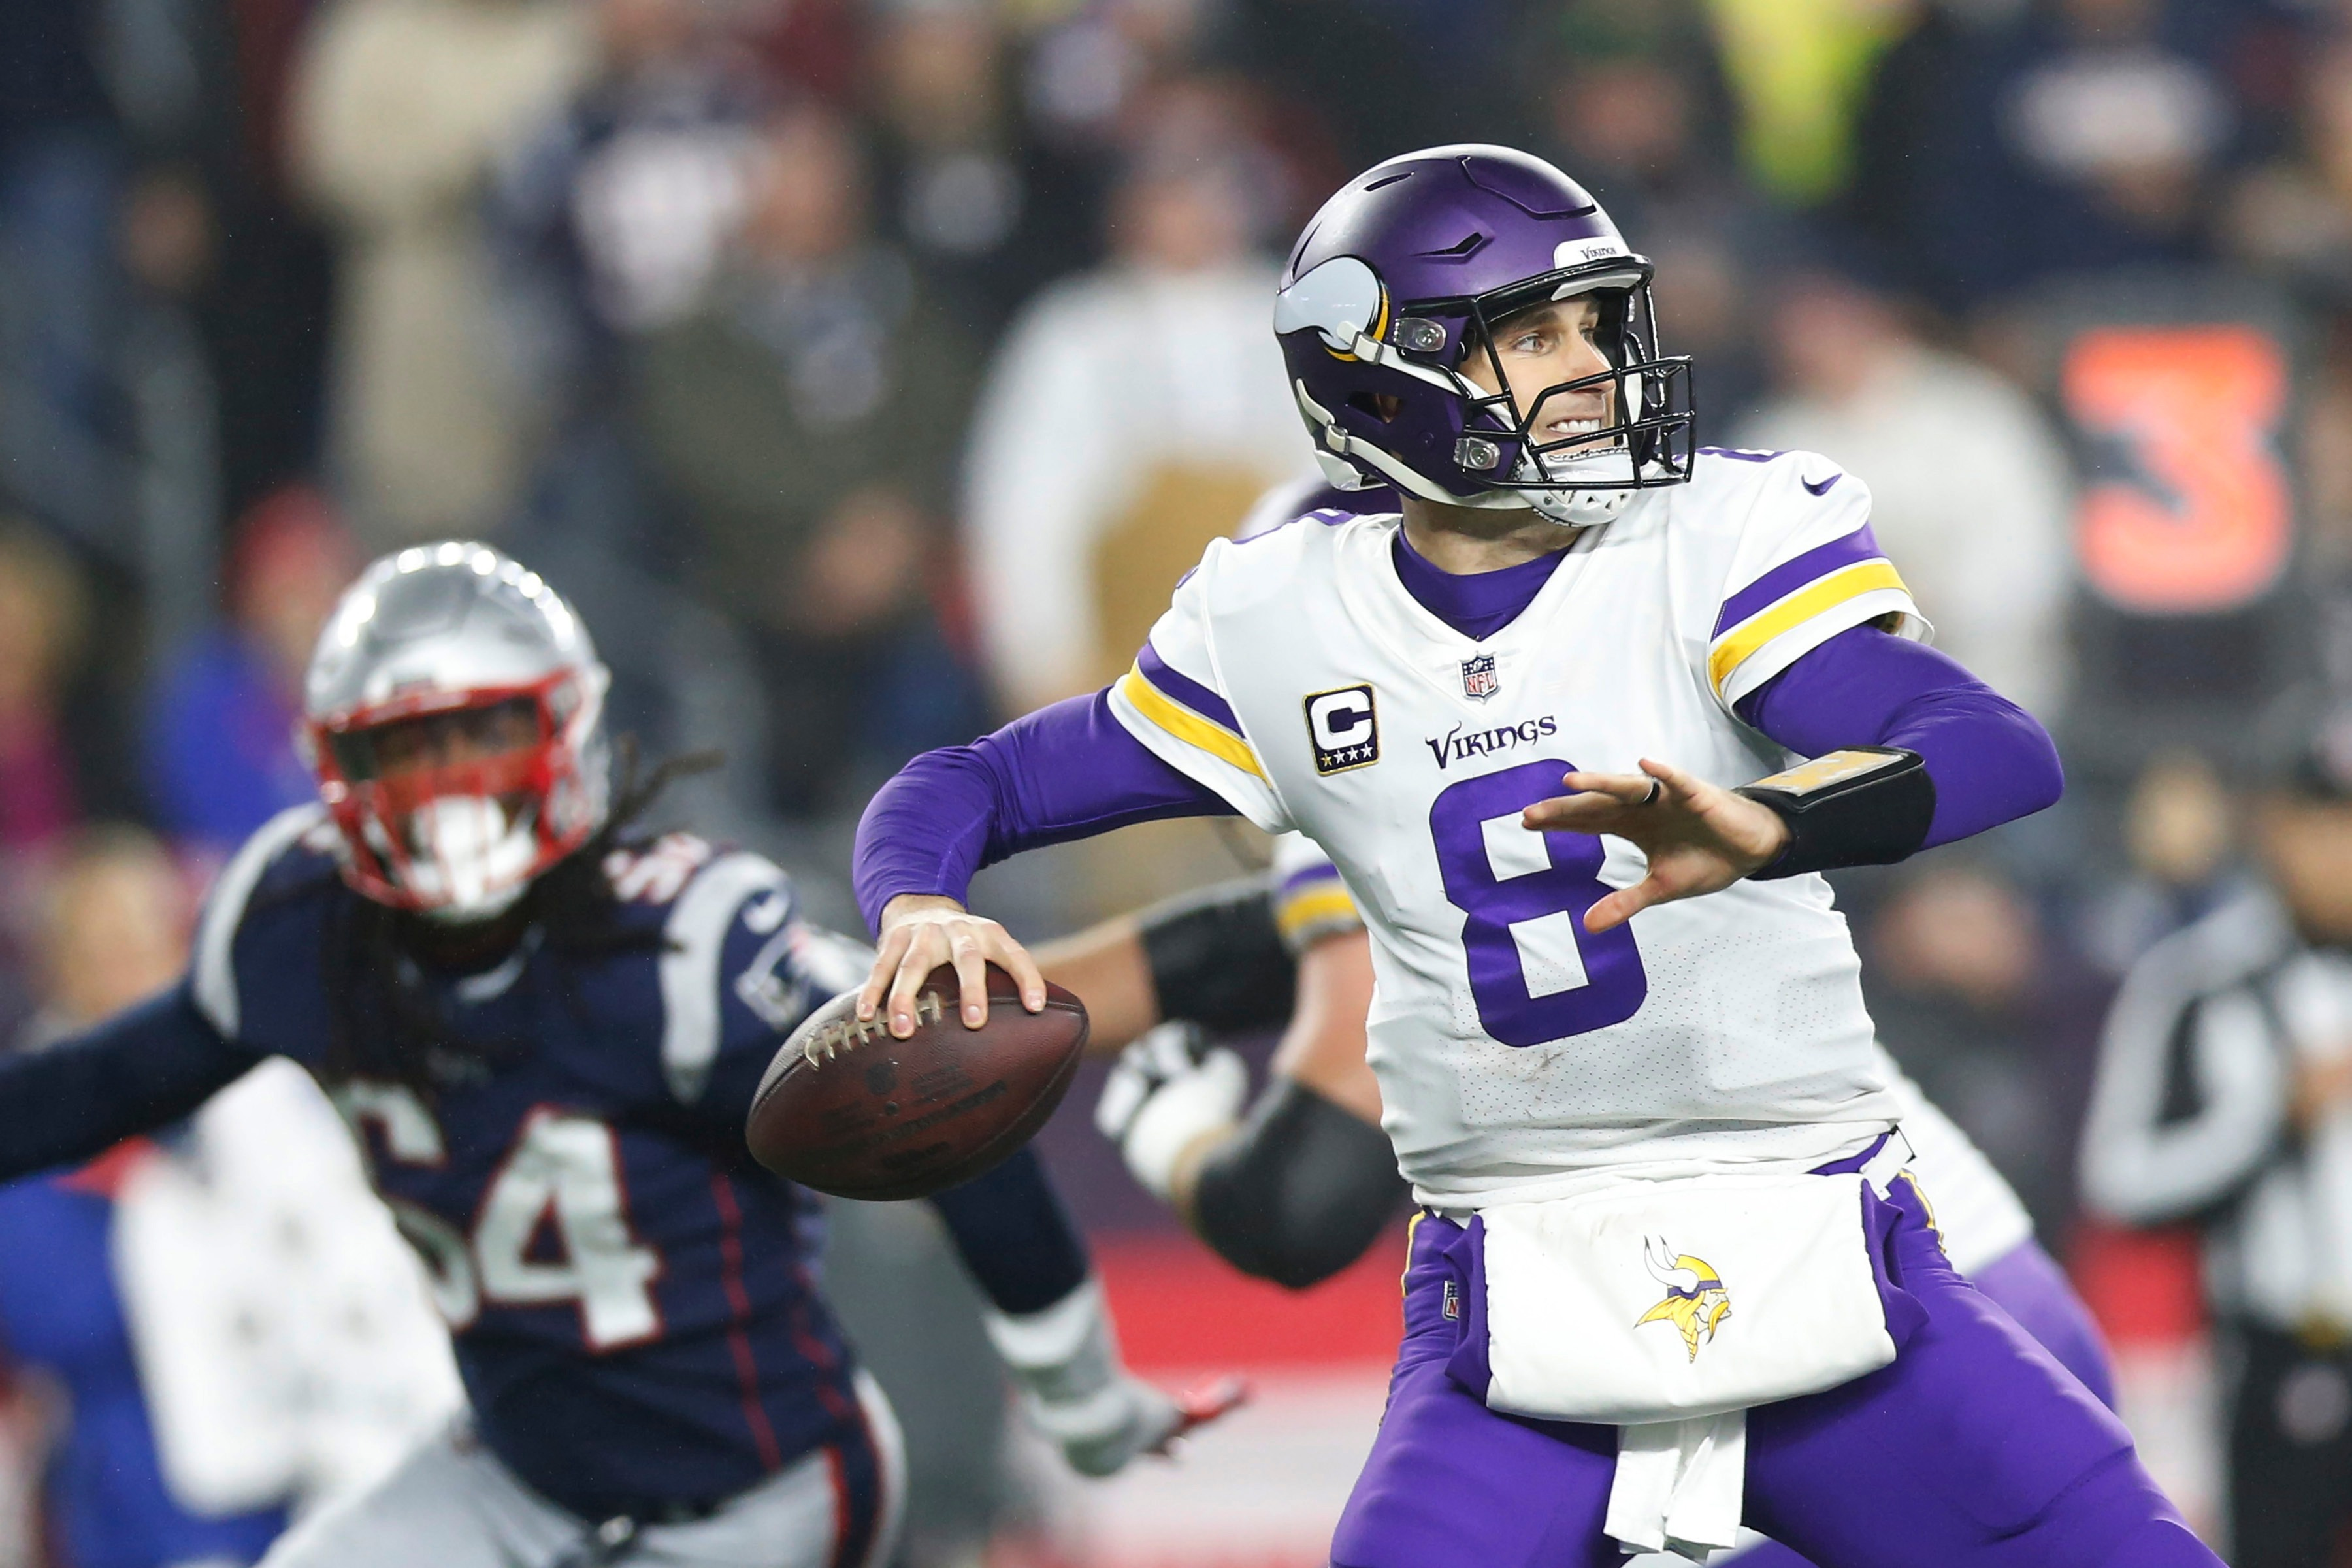 Vikings offense stalls in New England